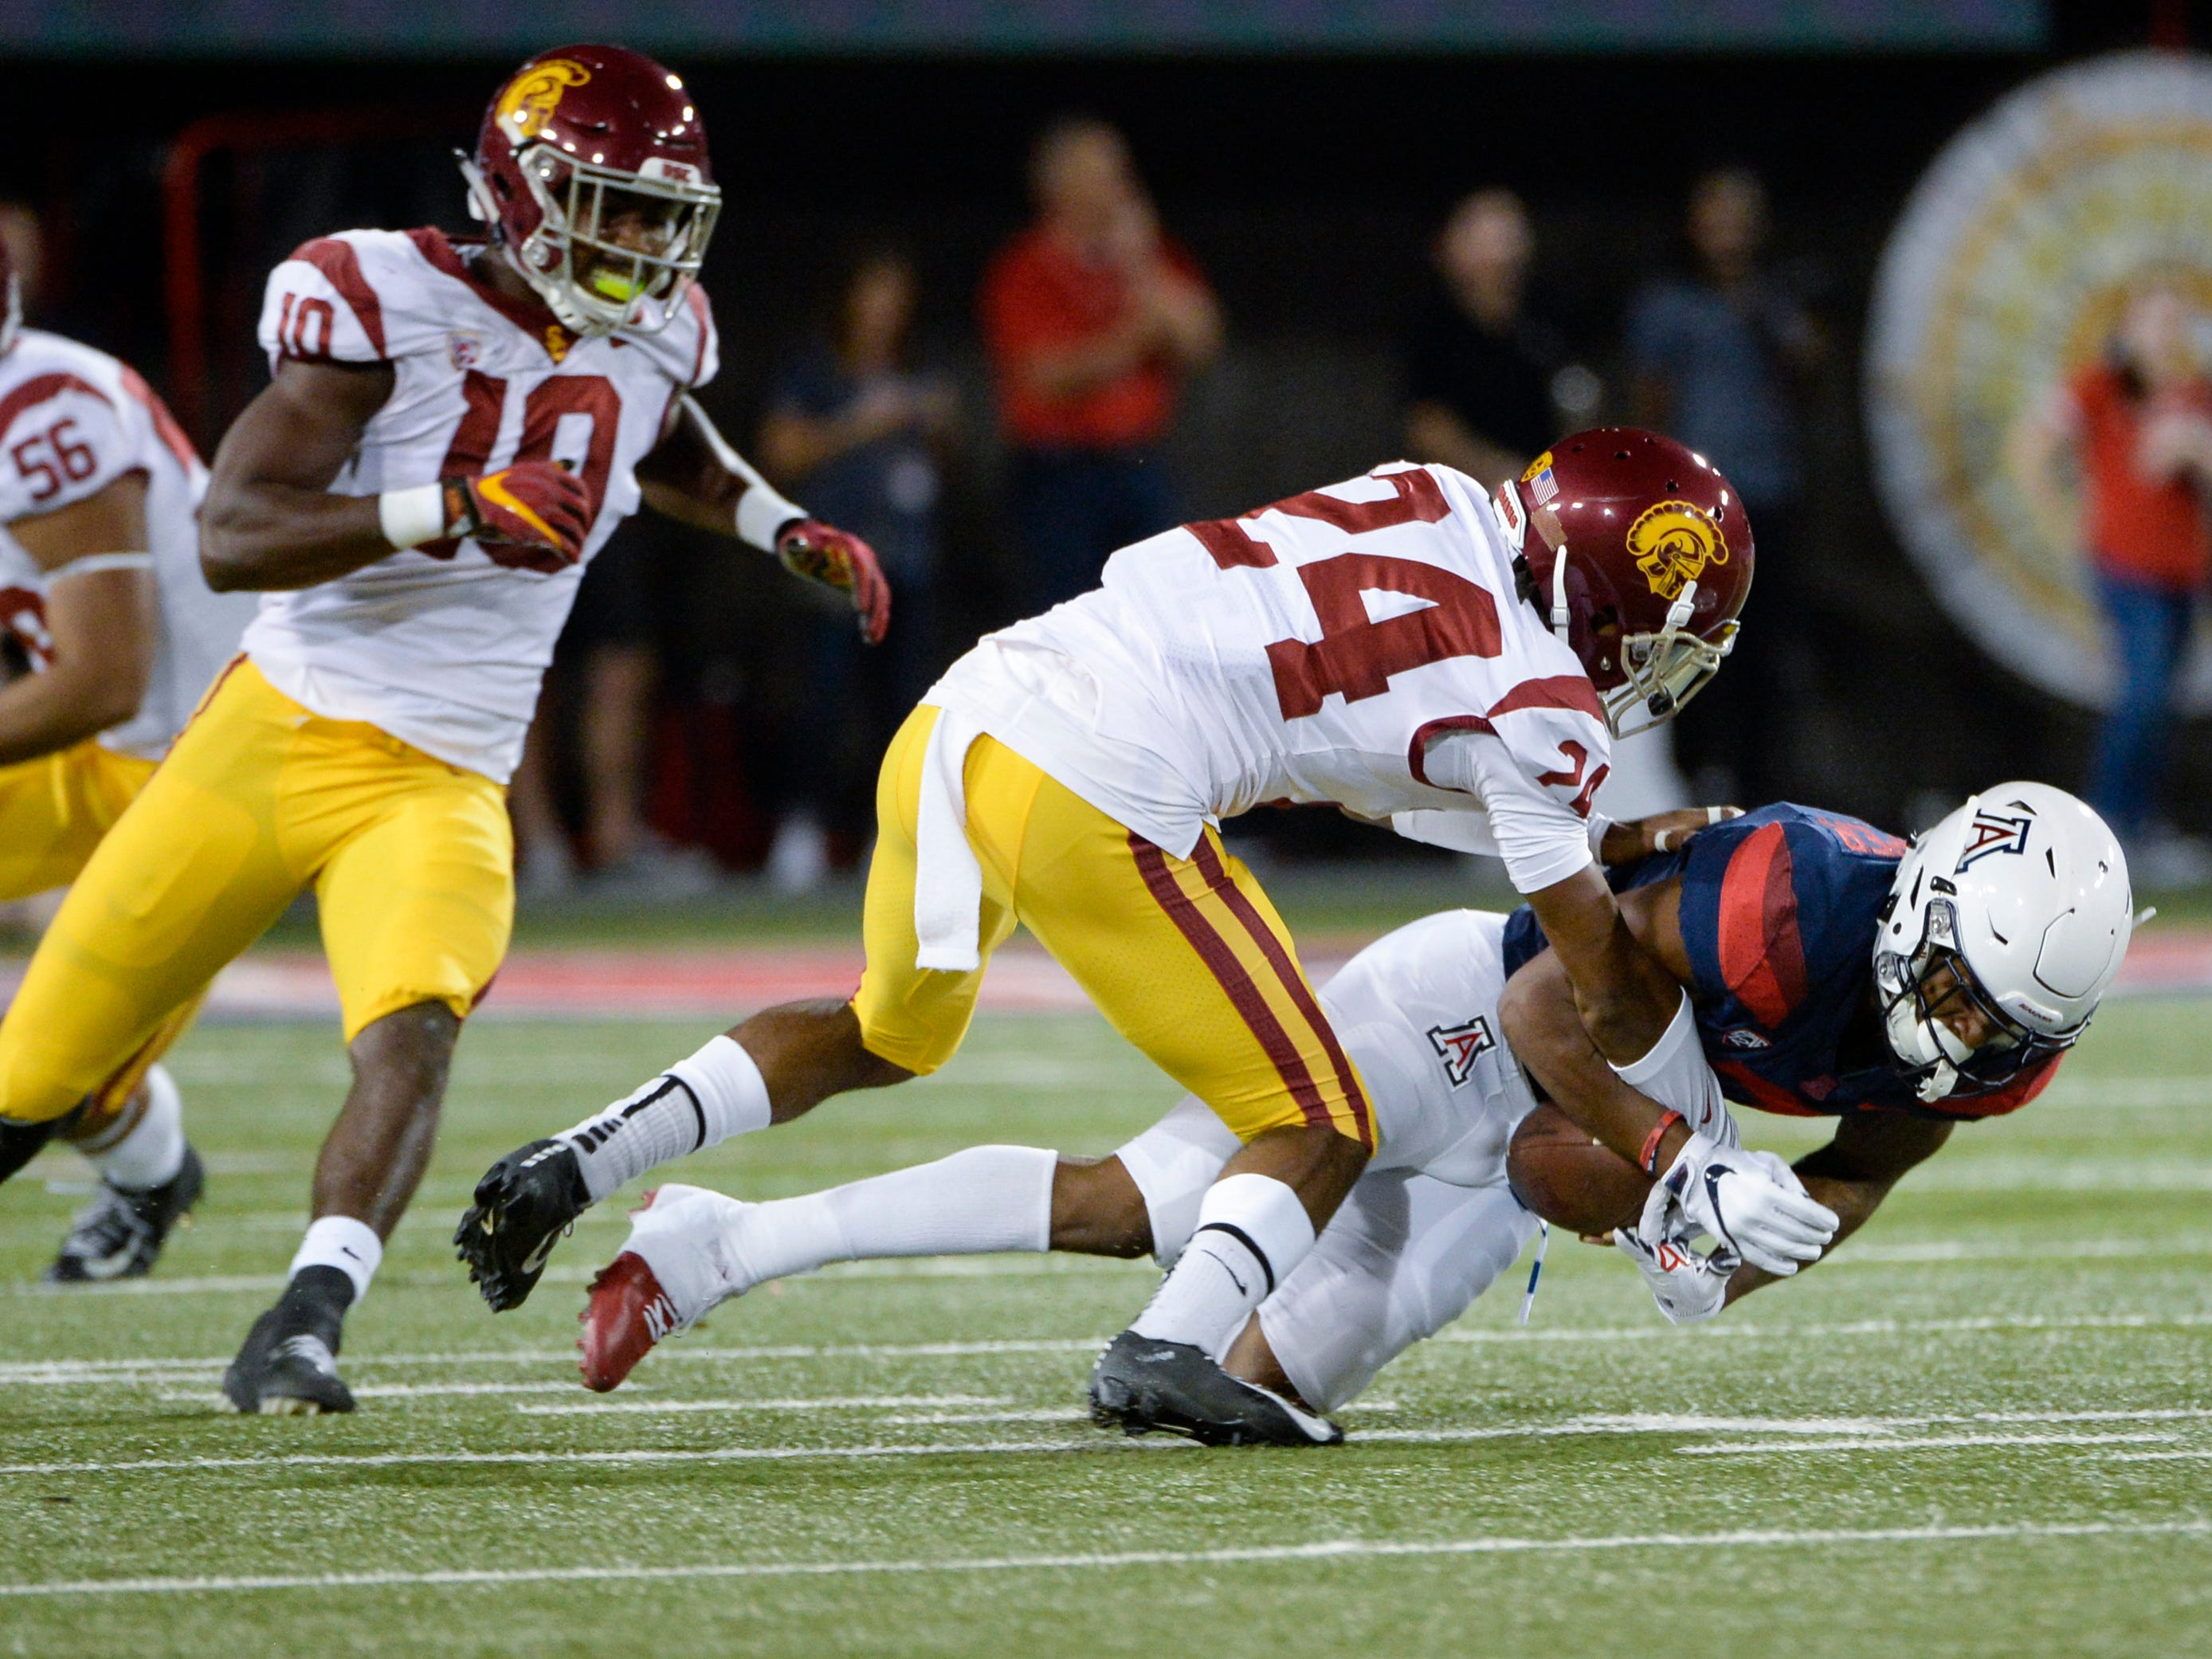 Sep 29, 2018; Tucson, AZ, USA; Arizona Wildcats wide receiver Devaughn Cooper (7) is tackled by Southern California Trojans cornerback Isaiah Langley (24) at Arizona Stadium. Mandatory Credit: Casey Sapio-USA TODAY Sports